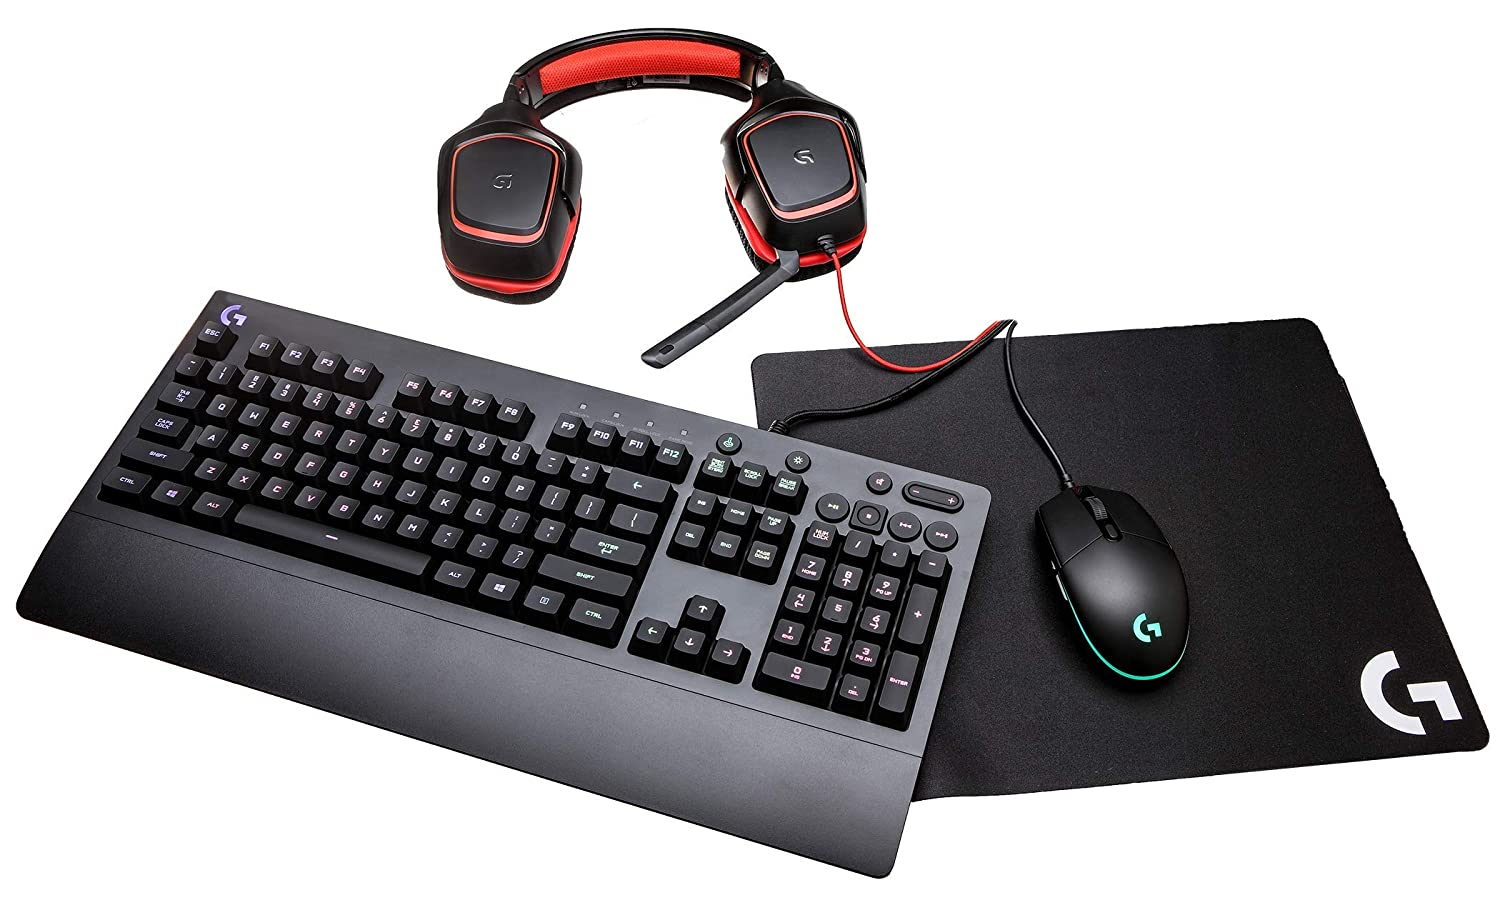 7f7ea9e8af0 Amazon.com: Logitech G Gear UP Gaming Bundle Gaming Grade Mouse, Keyboard,  Stereo Headset Mouse Pad, Black: Computers & Accessories